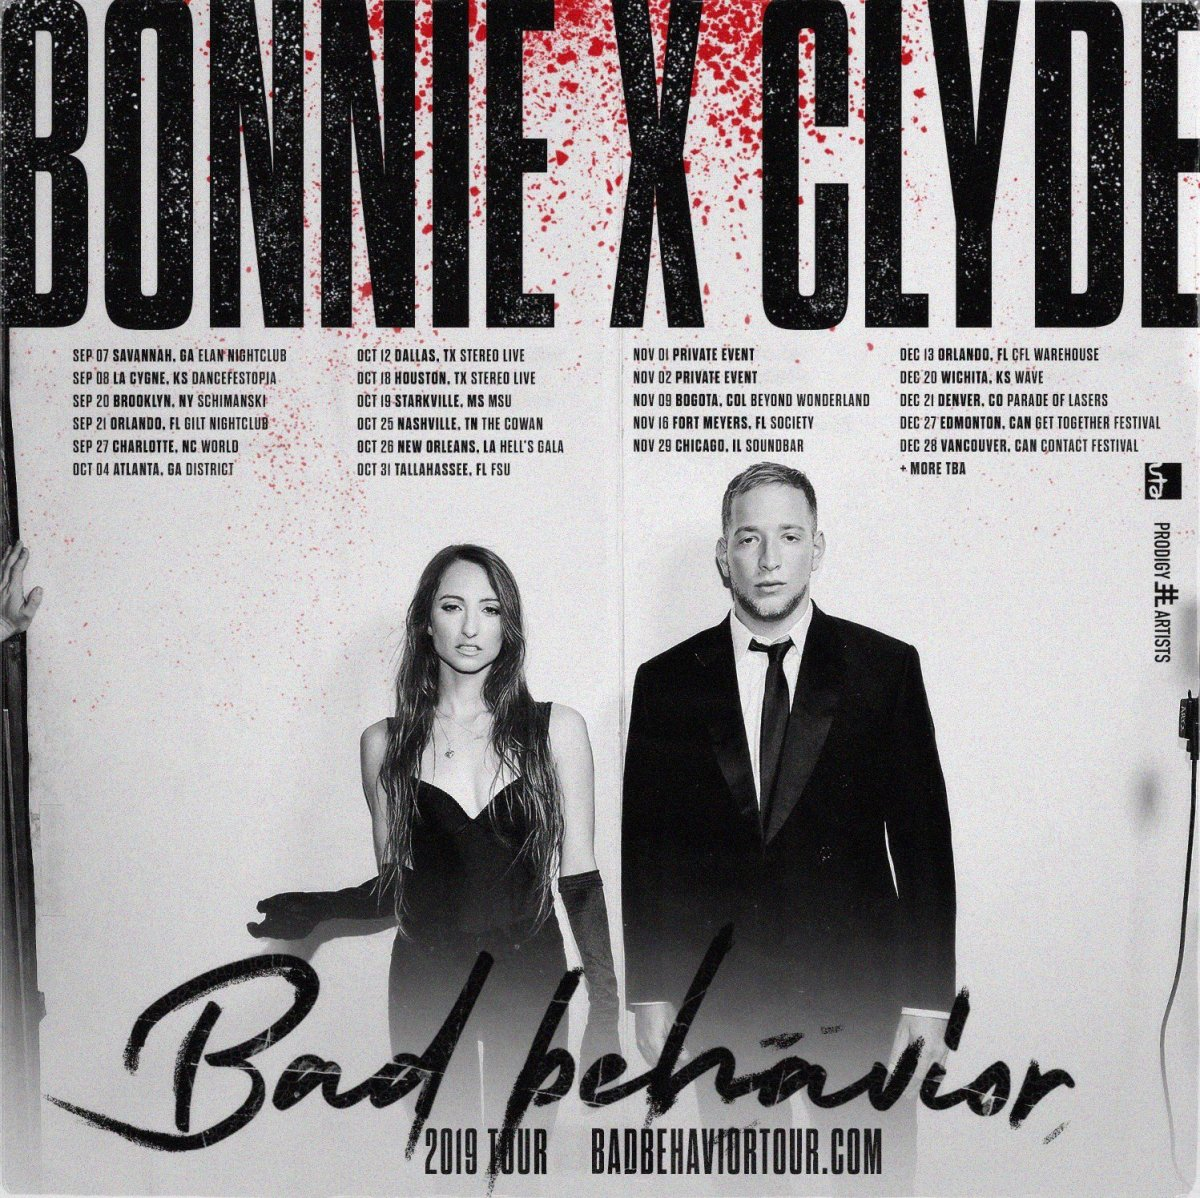 Bad Behavior BONNIE X CLYDE TOUR